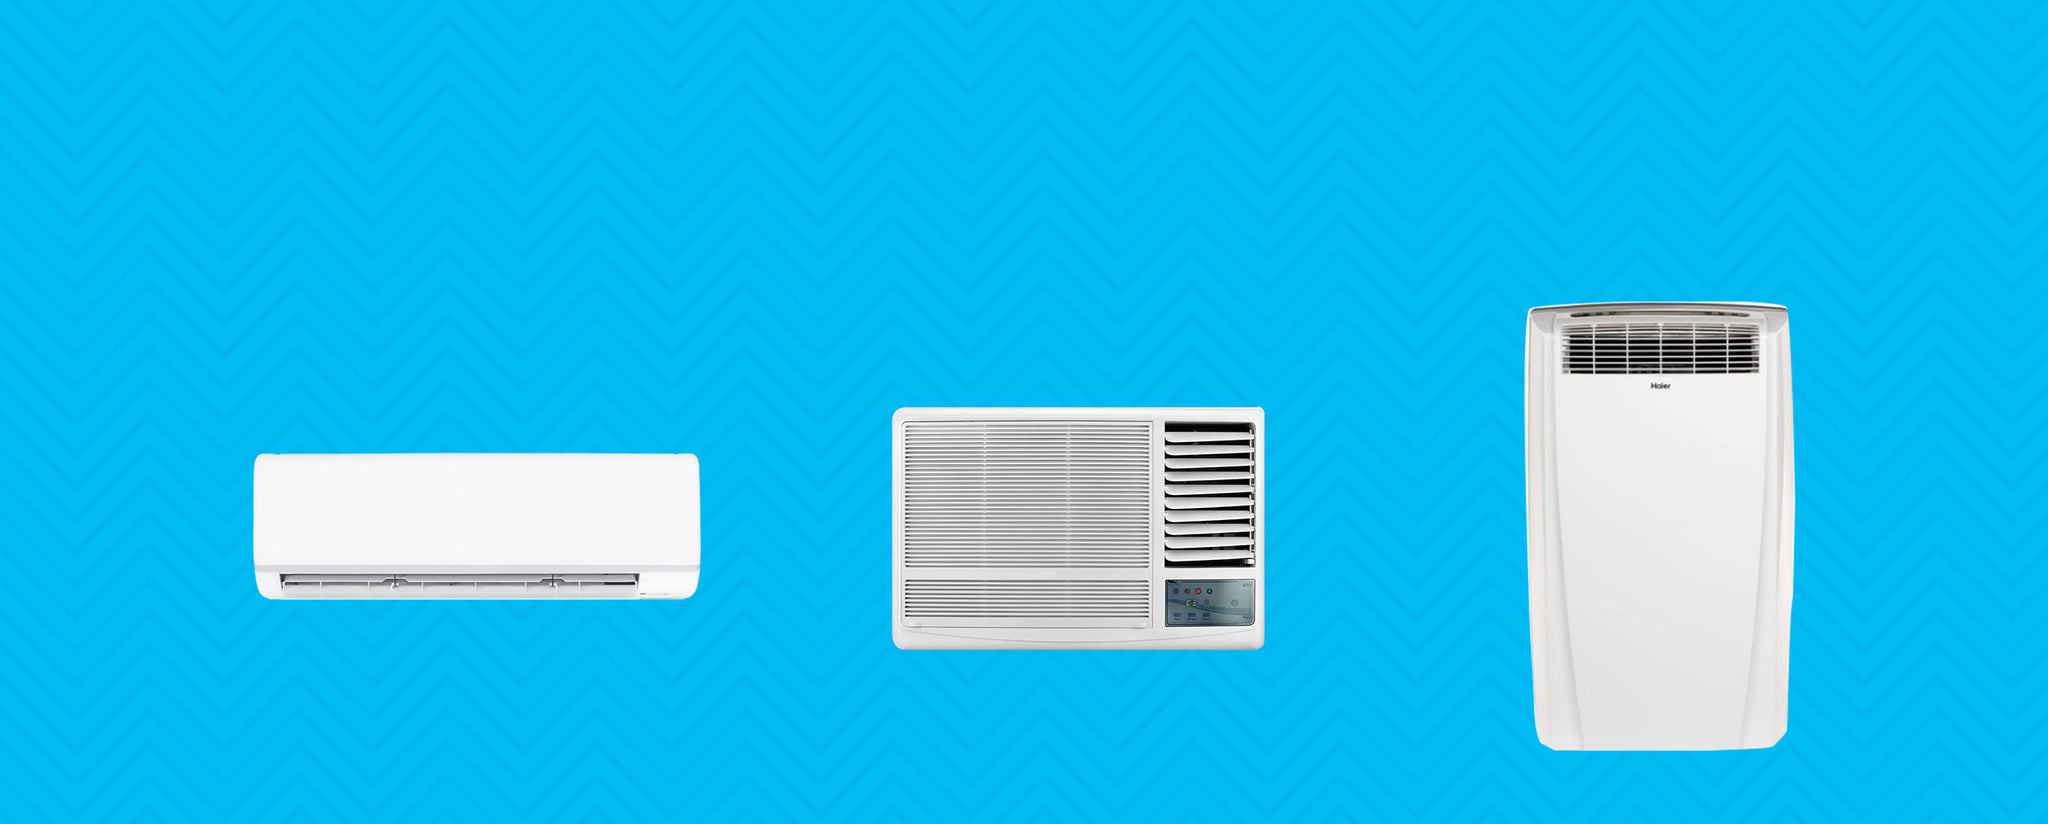 split-window-portable-ac-difference